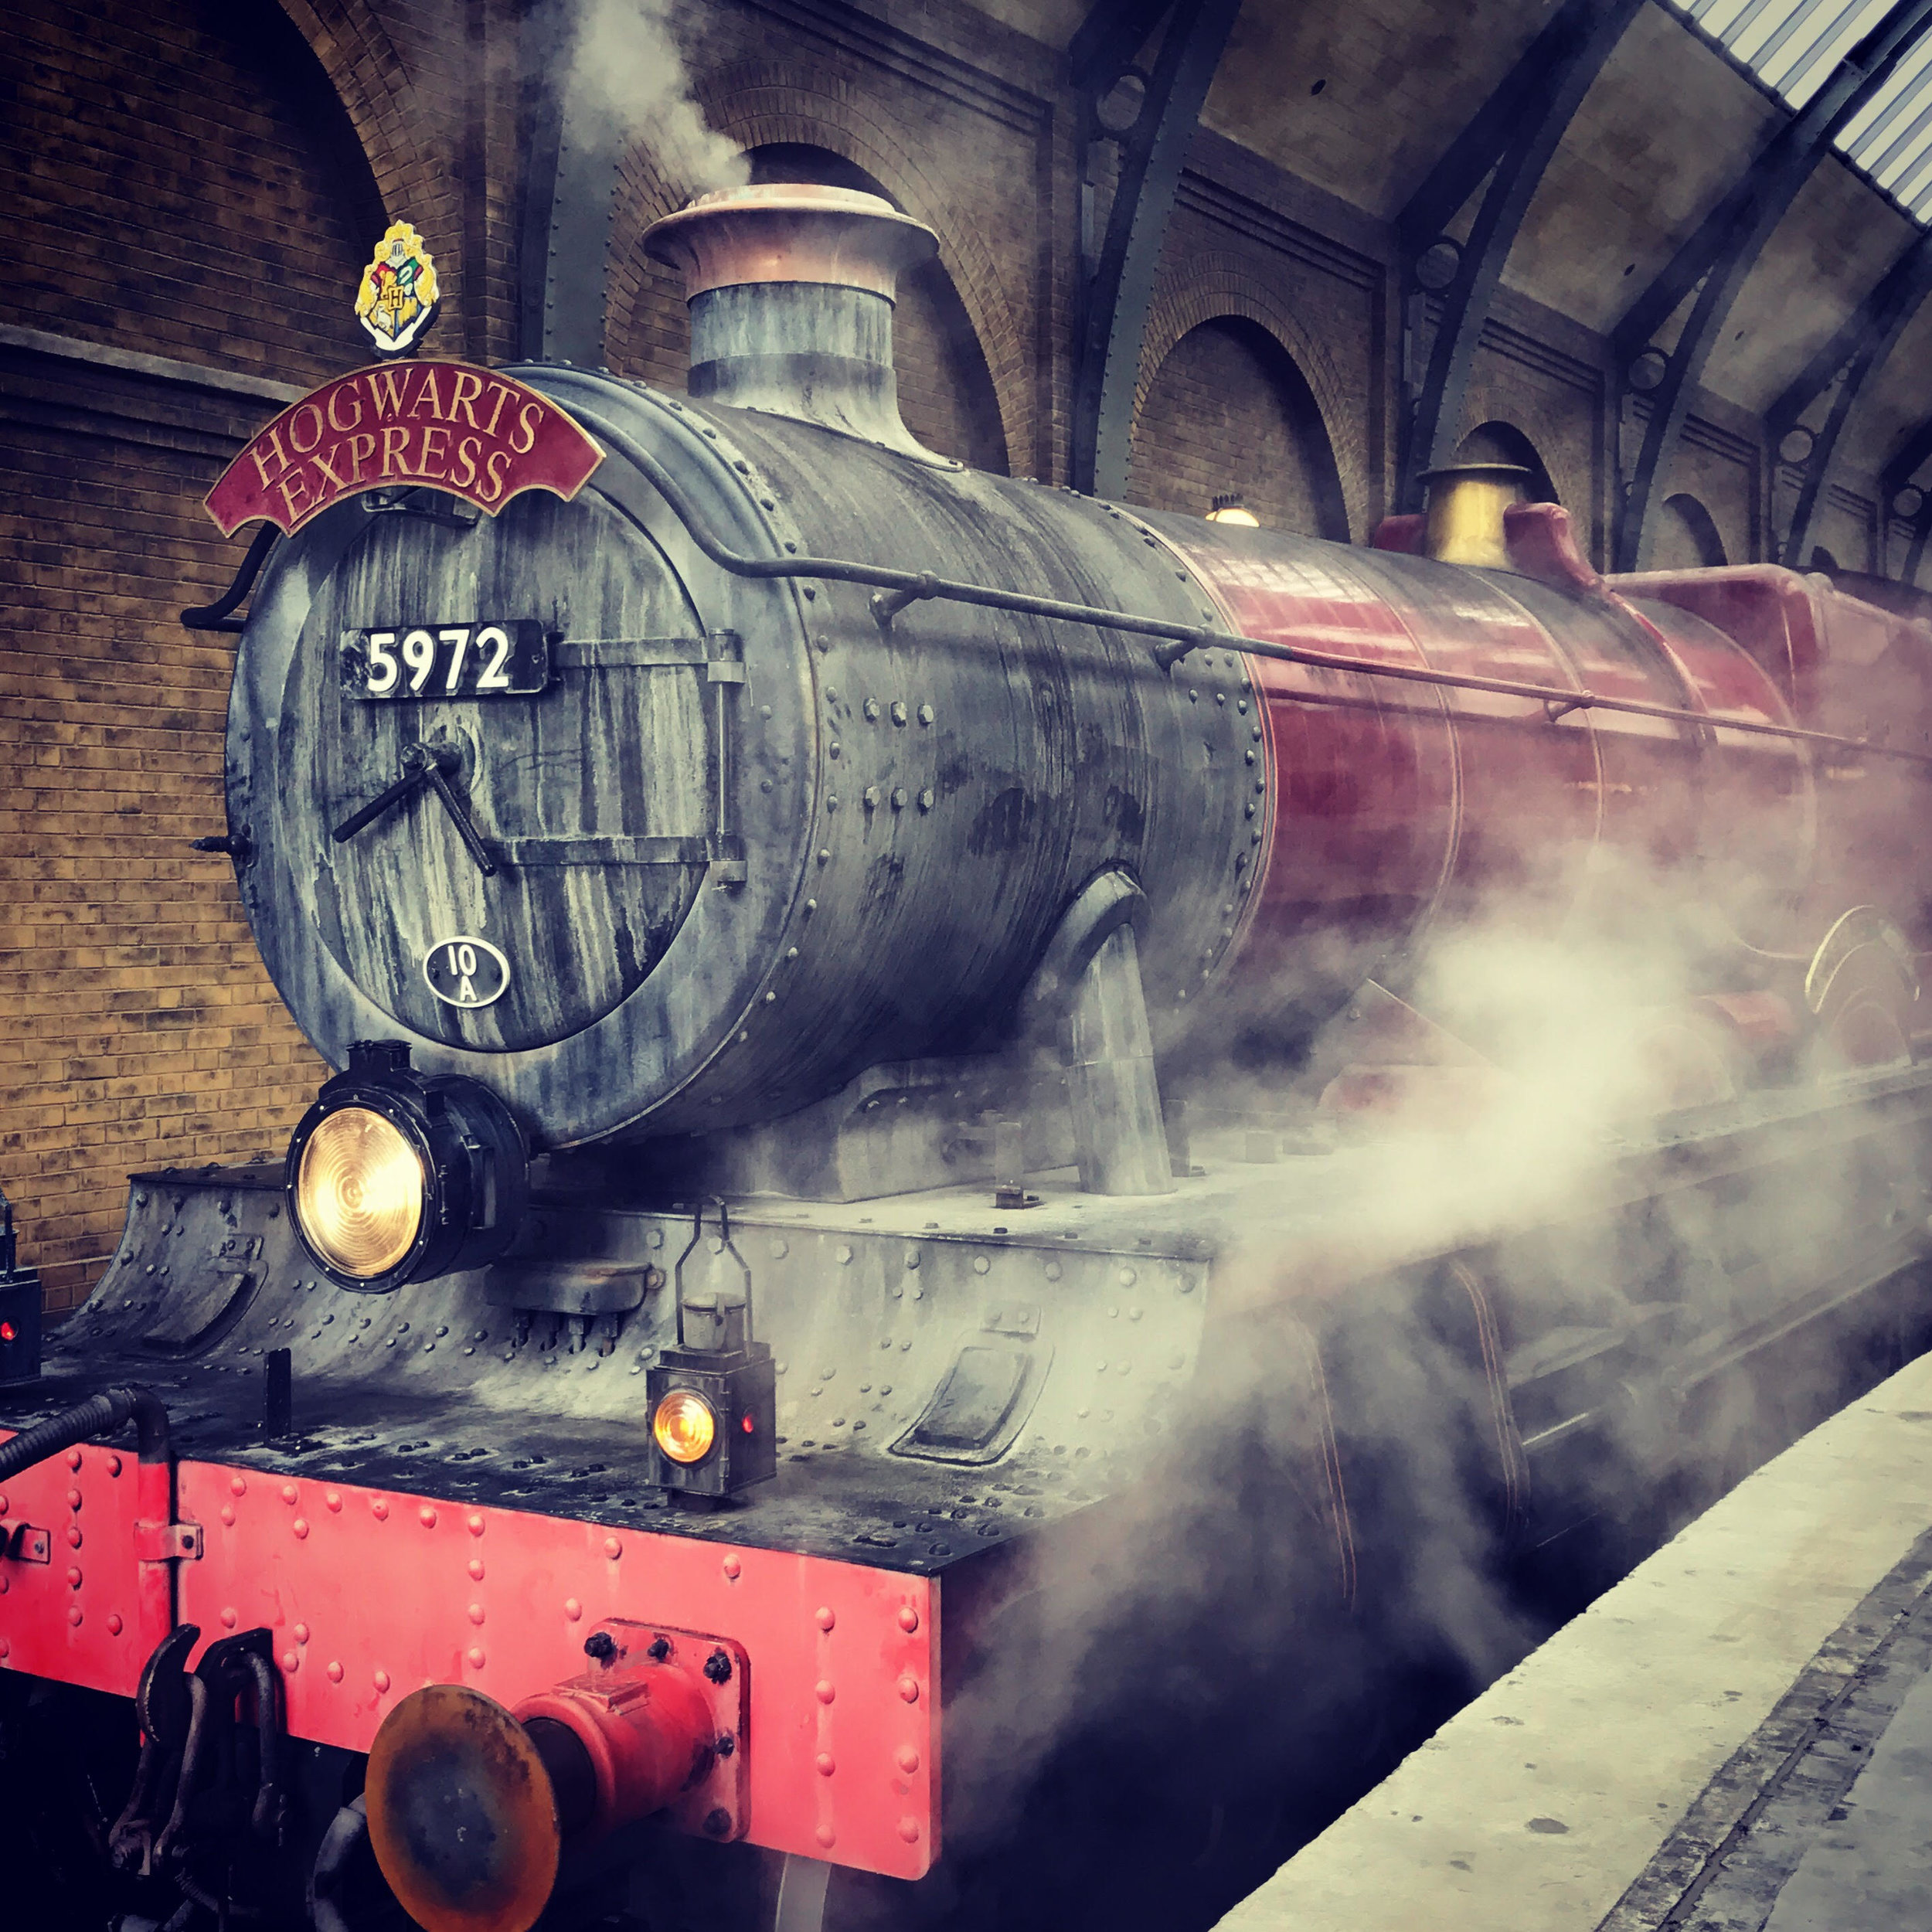 The Hogwarts Express transports park guests from Diagon Alley to Hogwarts and back again.